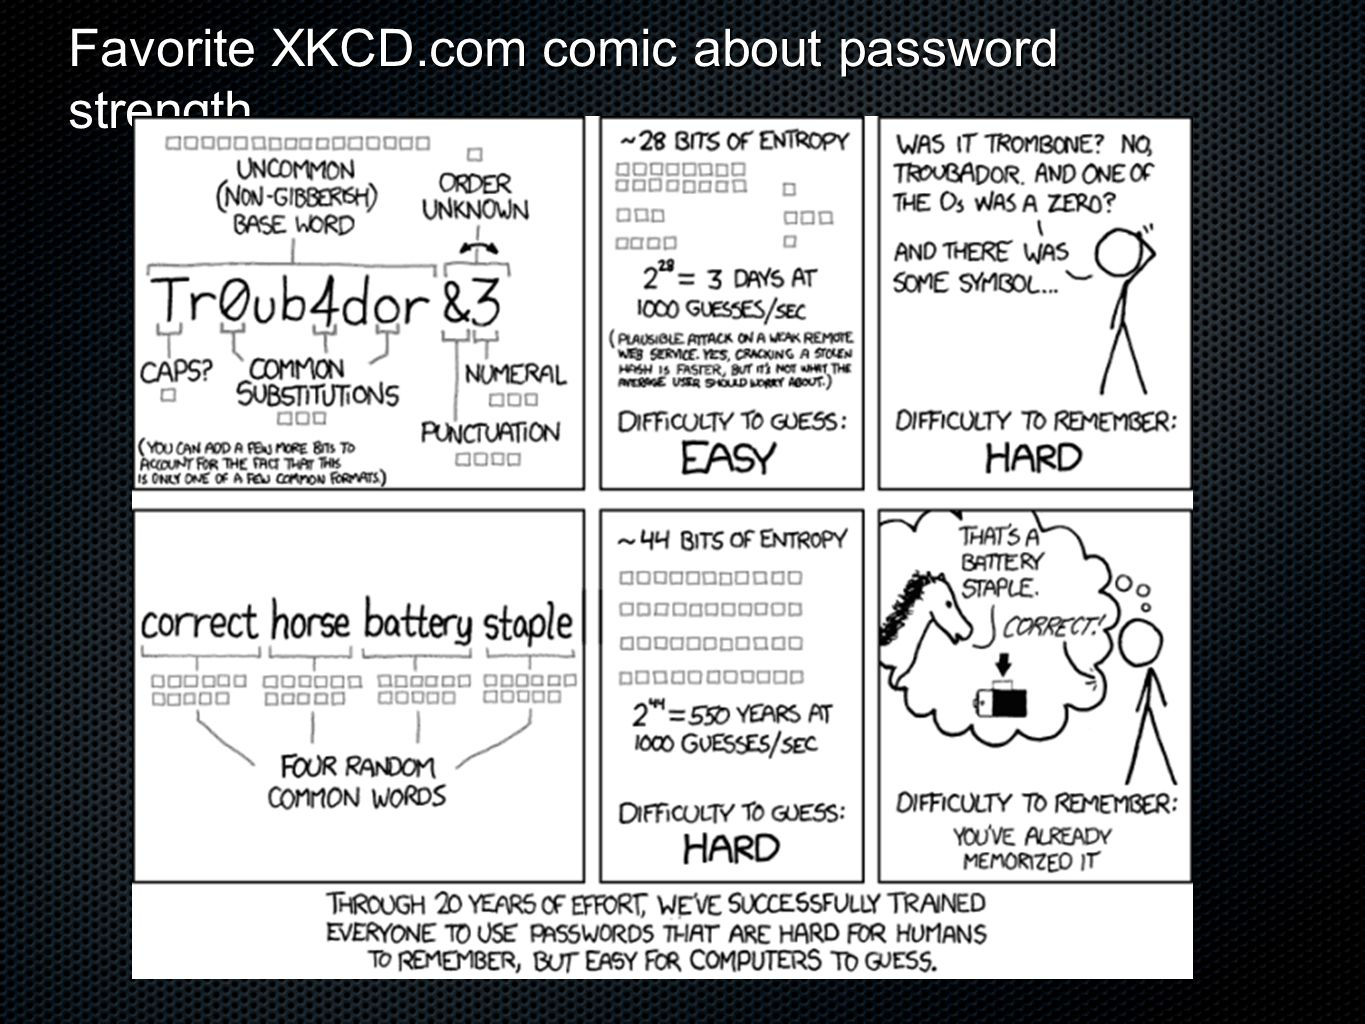 Favorite XKCD.com comic about password strength